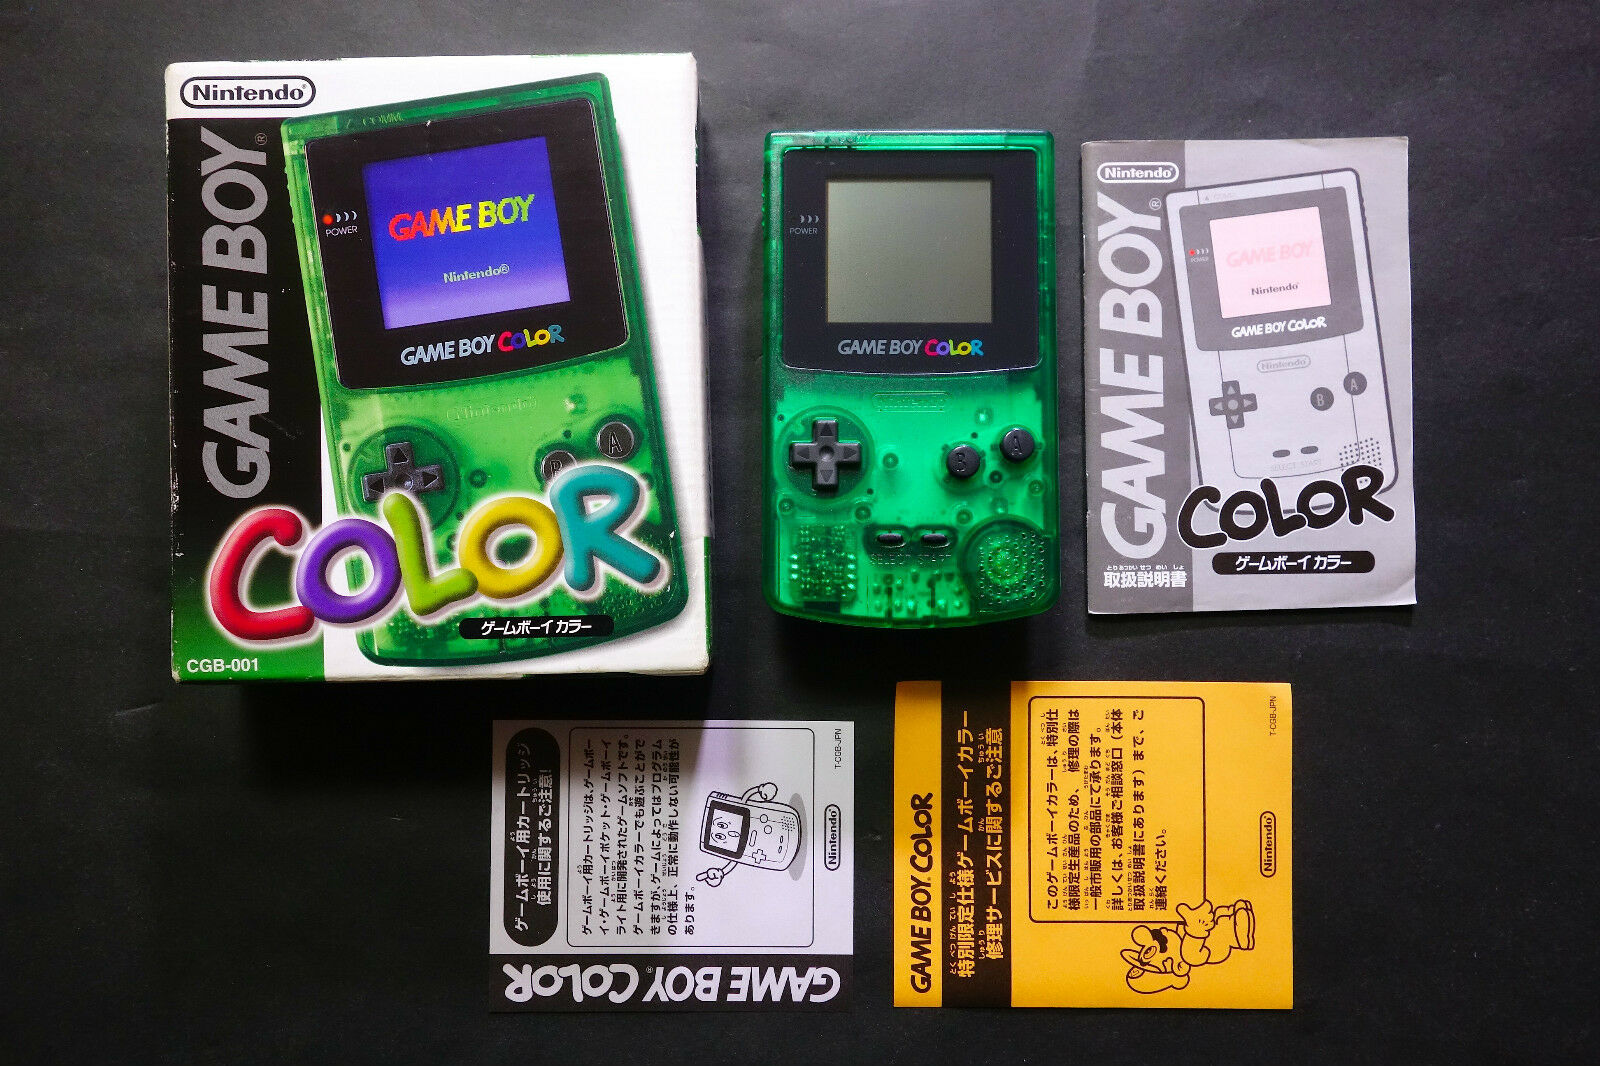 Game boy color japan - Console Game Boy Color Clear Green Toys R Us Limited Japan Good Condition